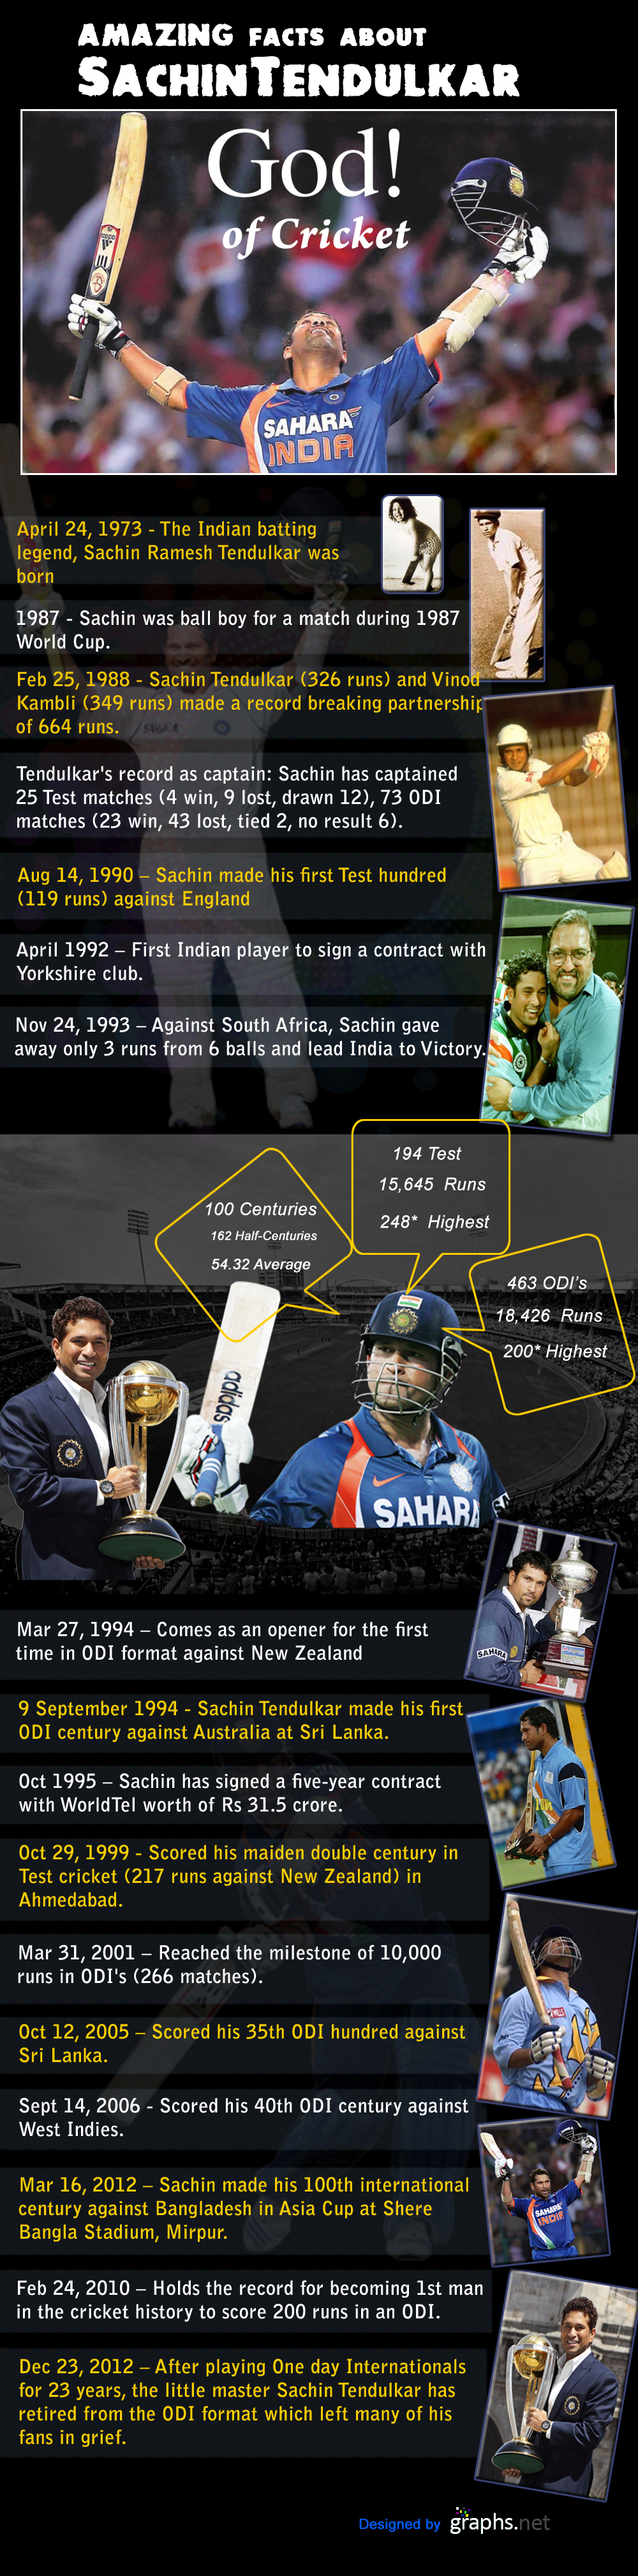 Amazing Facts about Sachin Tendulkar